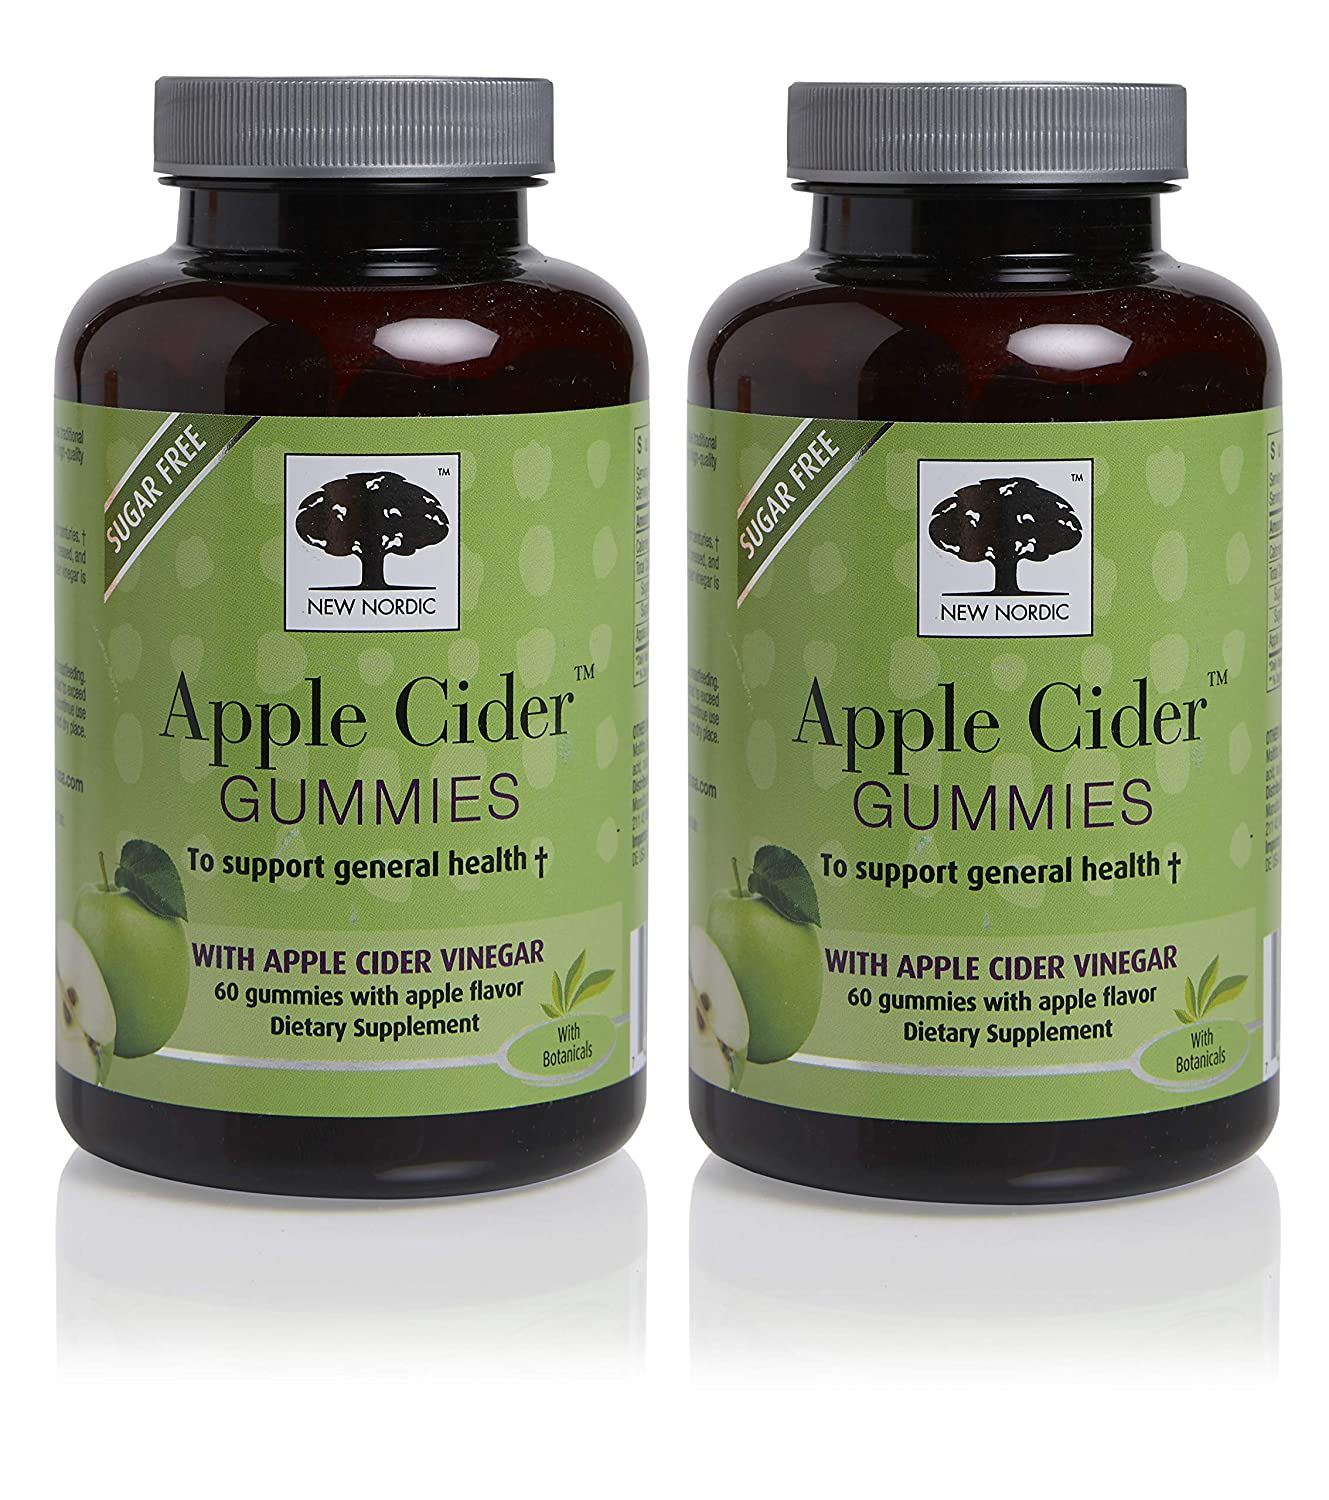 New Nordic Apple Cider Gummies, 60 Count Pack of 2